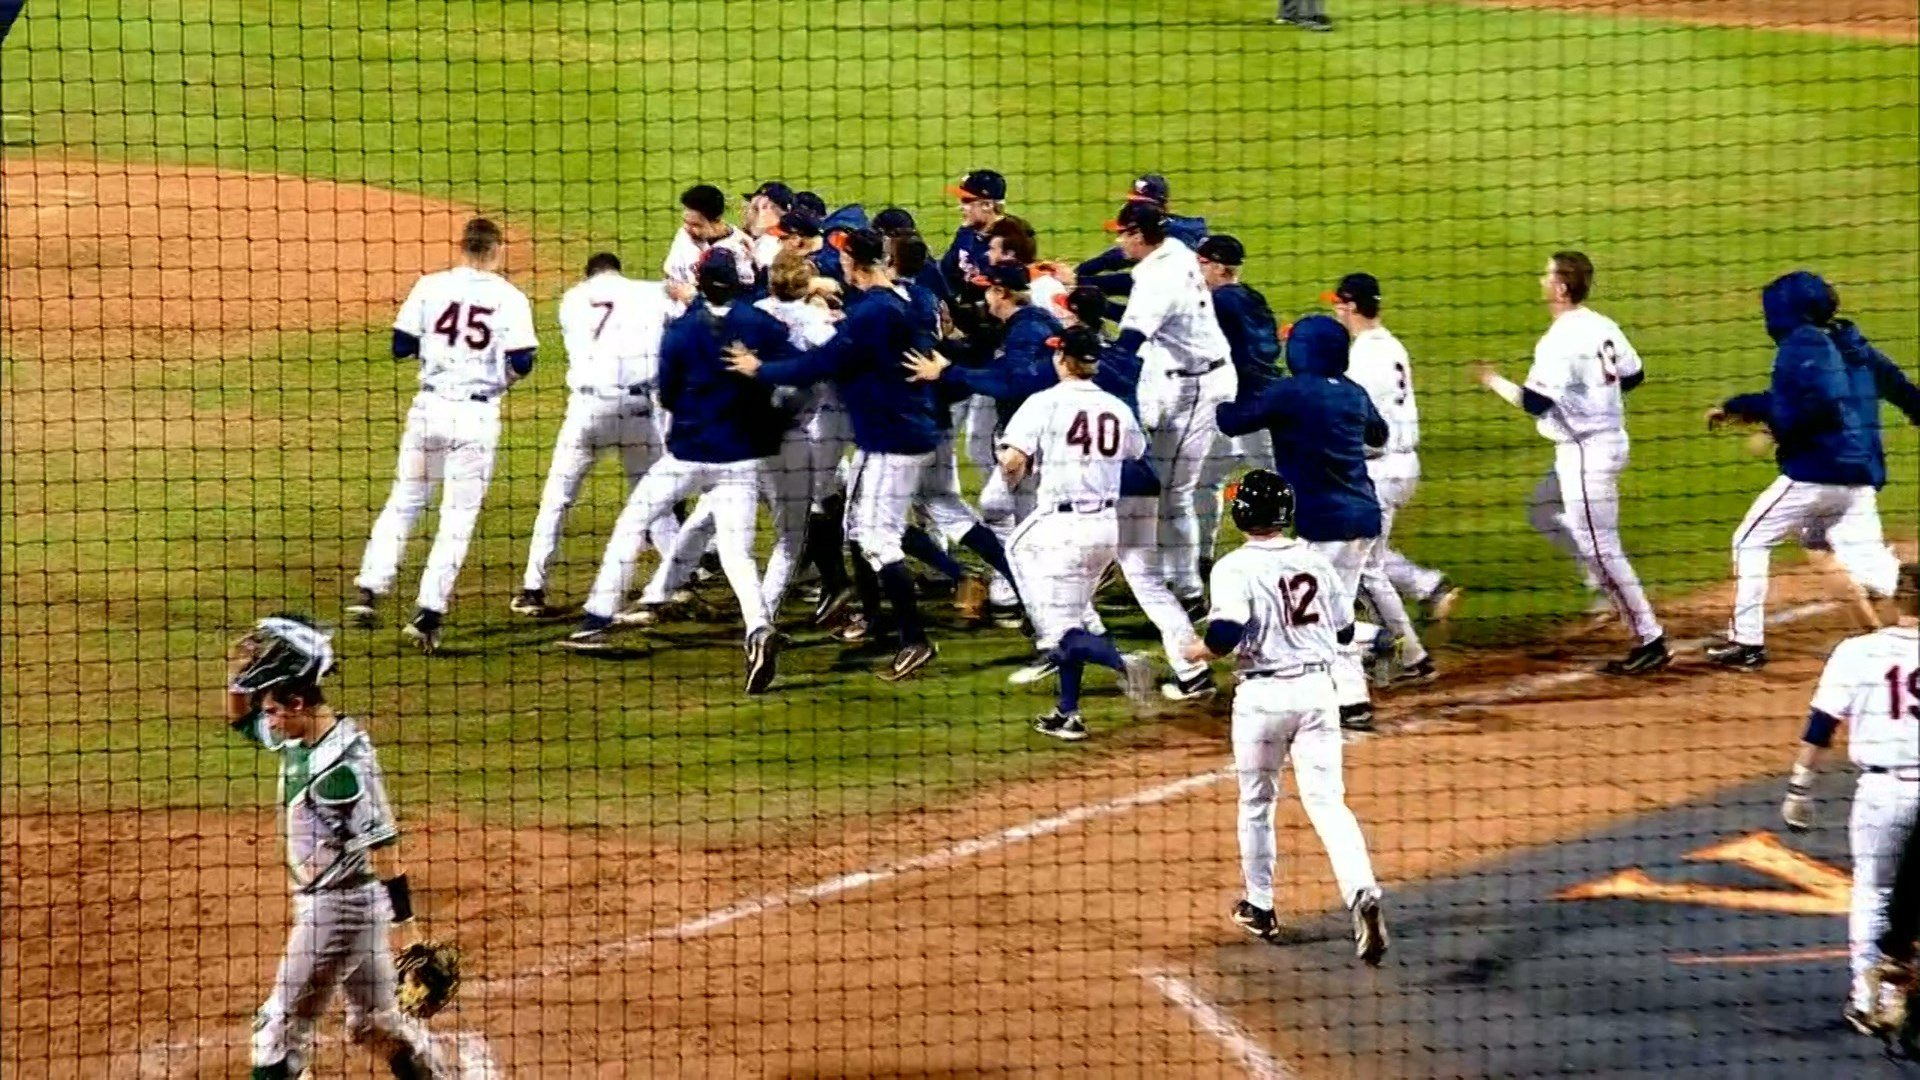 The UVa baseball team celebrates a walk-off win against William & Mary